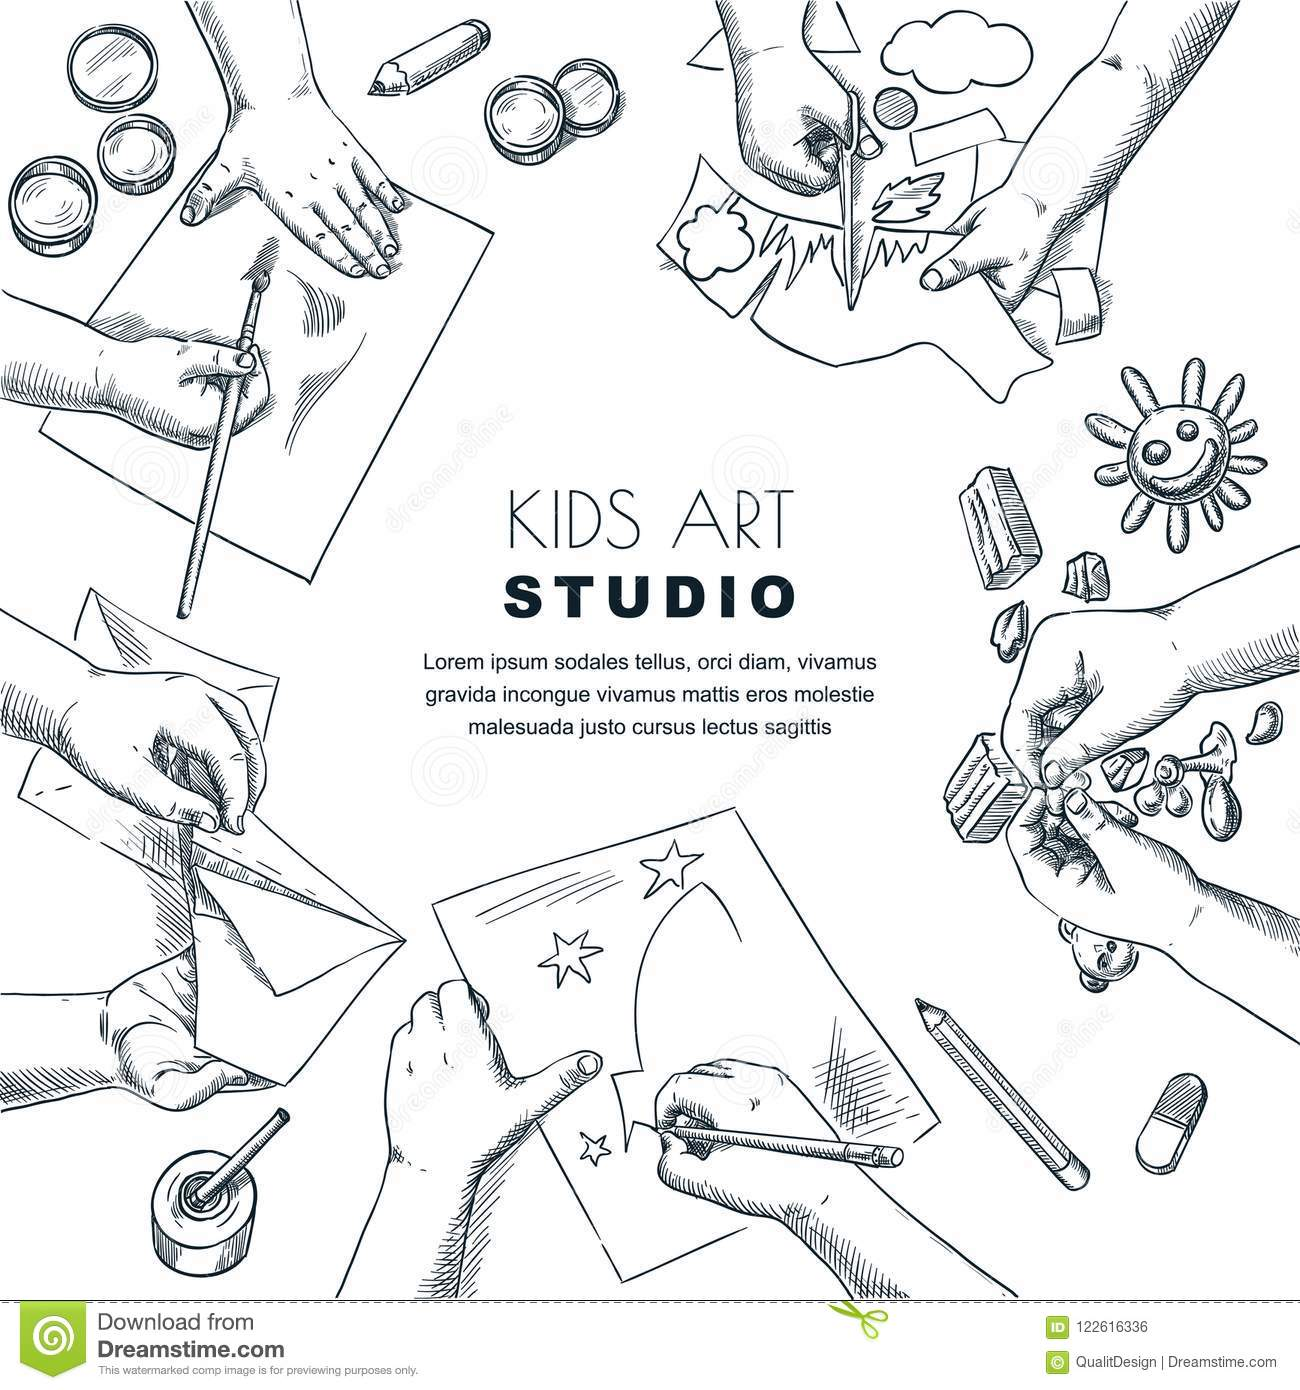 Kids Art Class Work Process Vector Sketch Illustration Of Painting